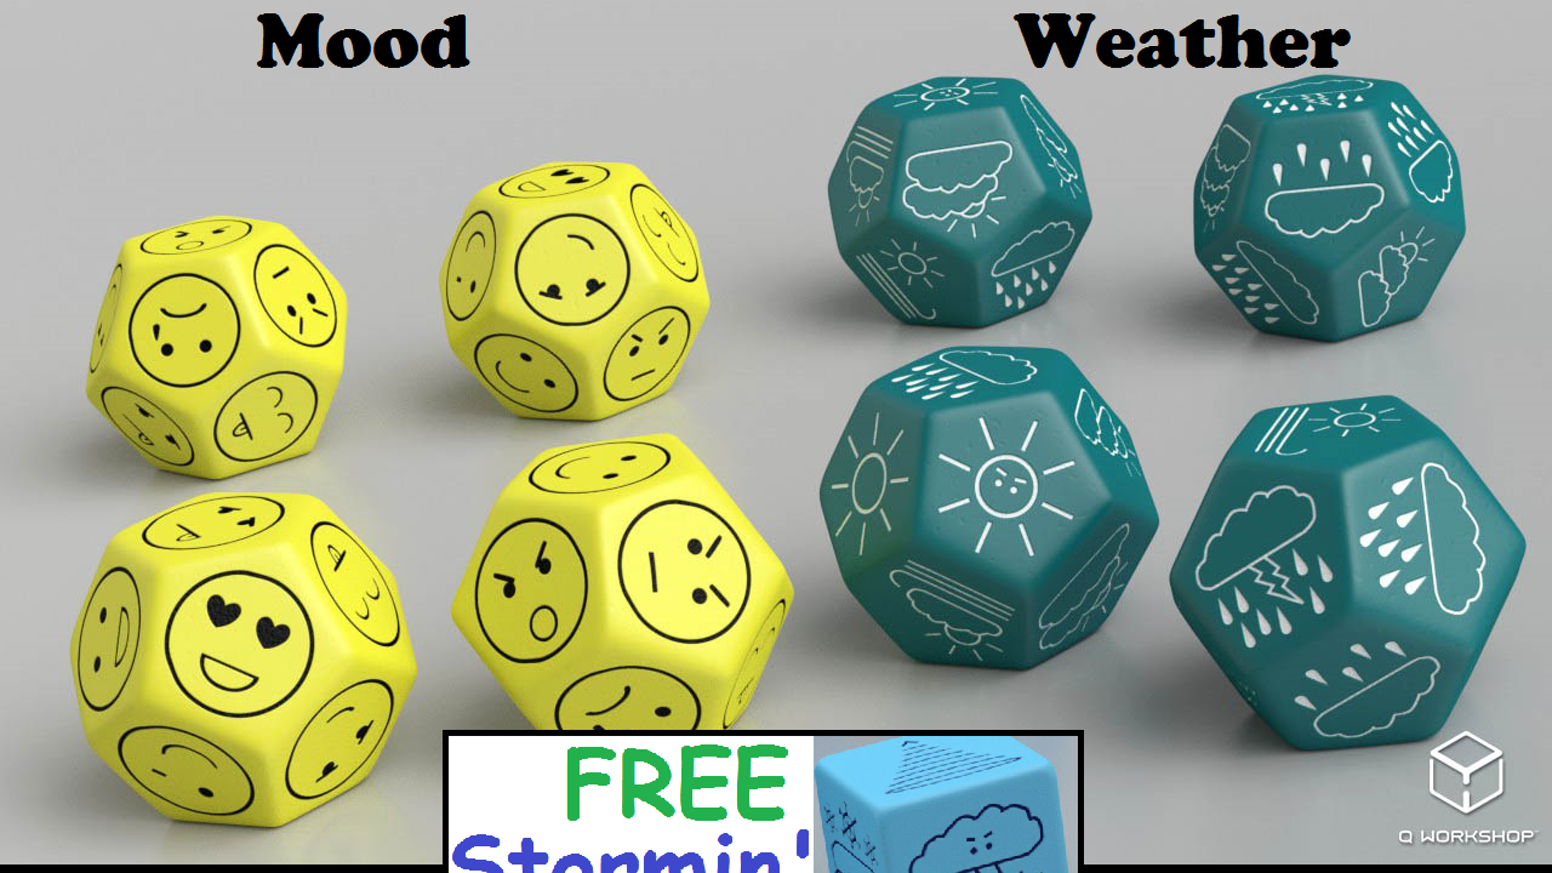 The d12s you've always wanted: Mood and Weather dice!